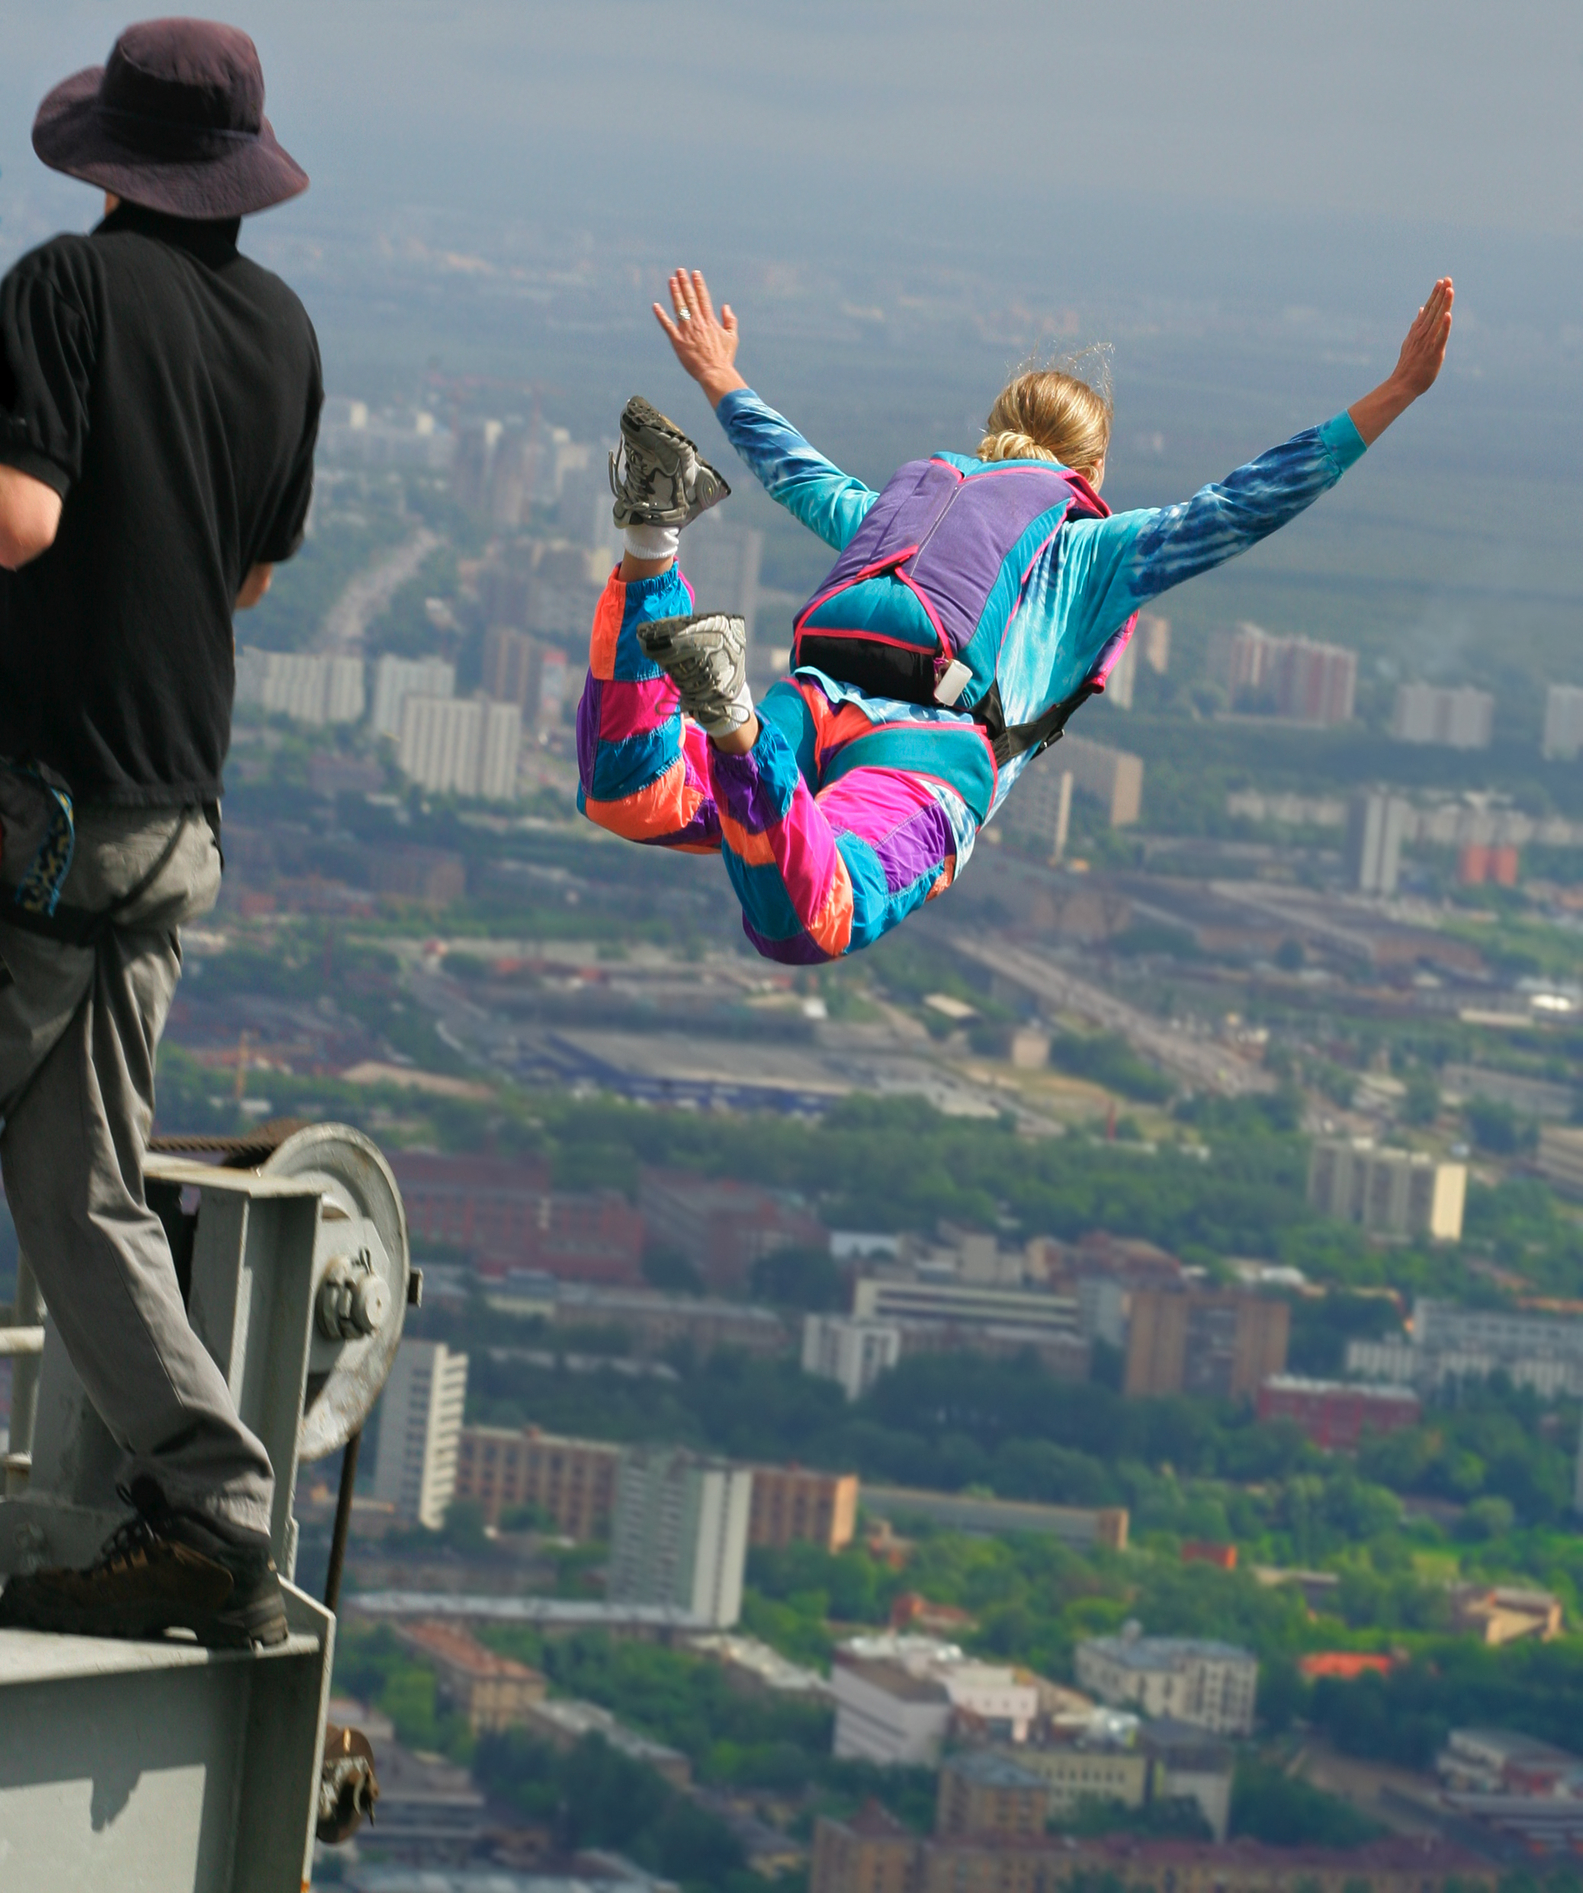 http://www.dreamstime.com/royalty-free-stock-photography-base-jumping-image3441637